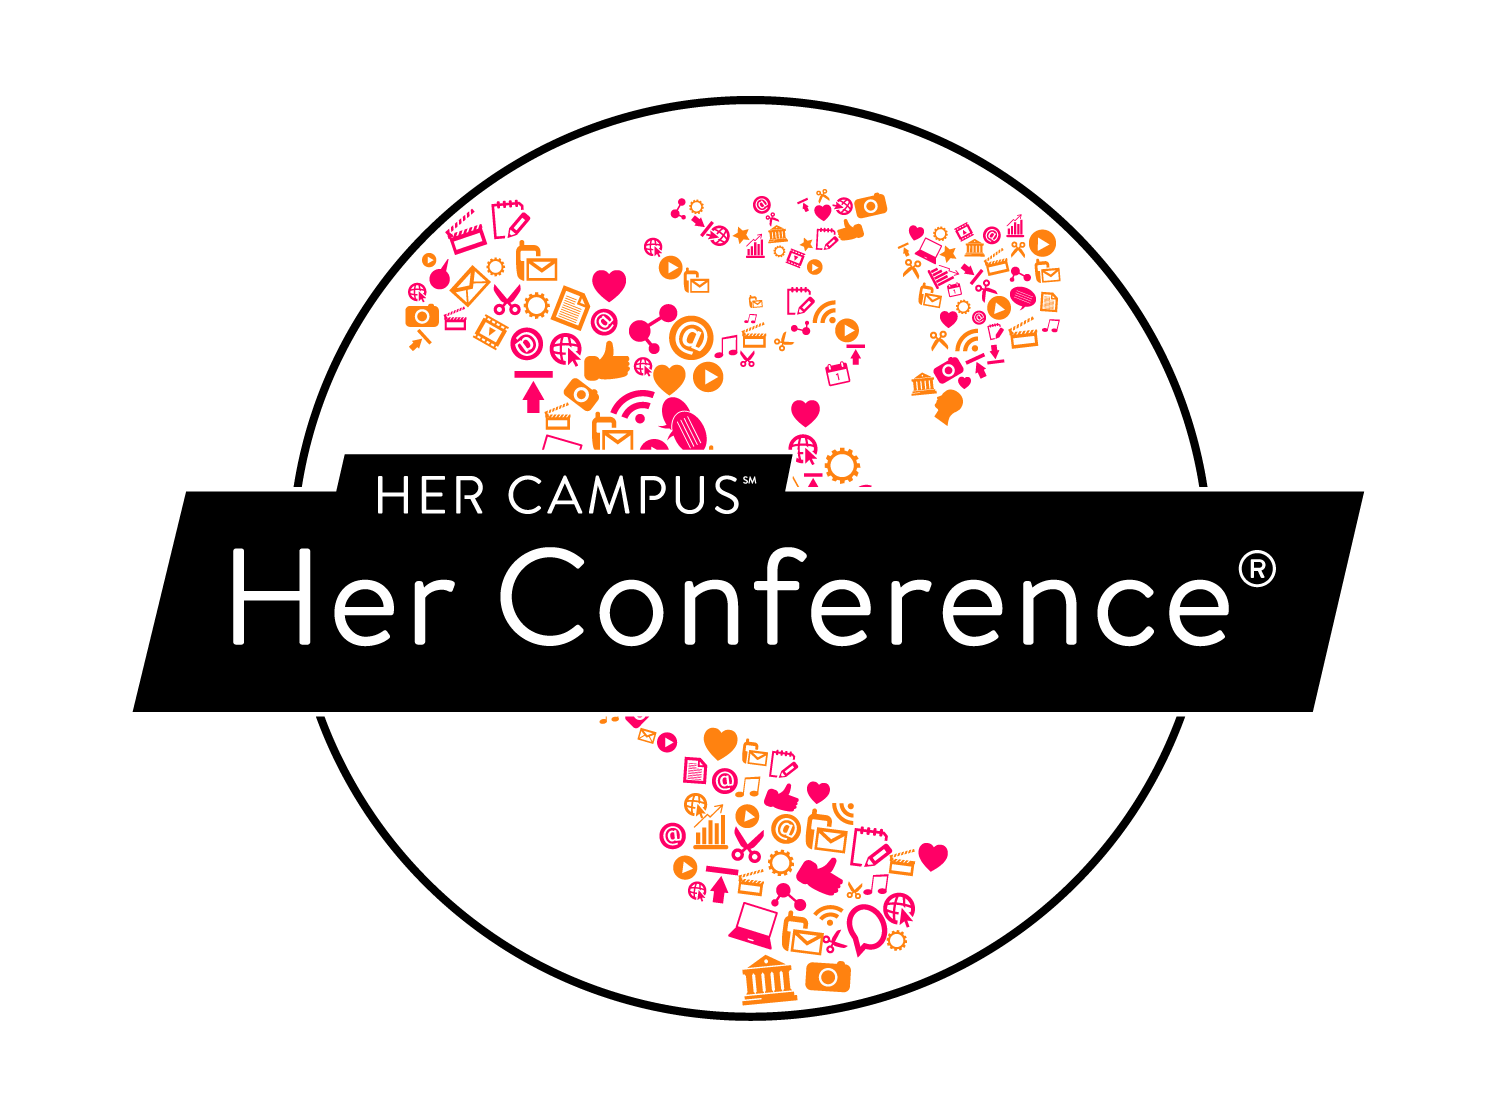 Her Conference